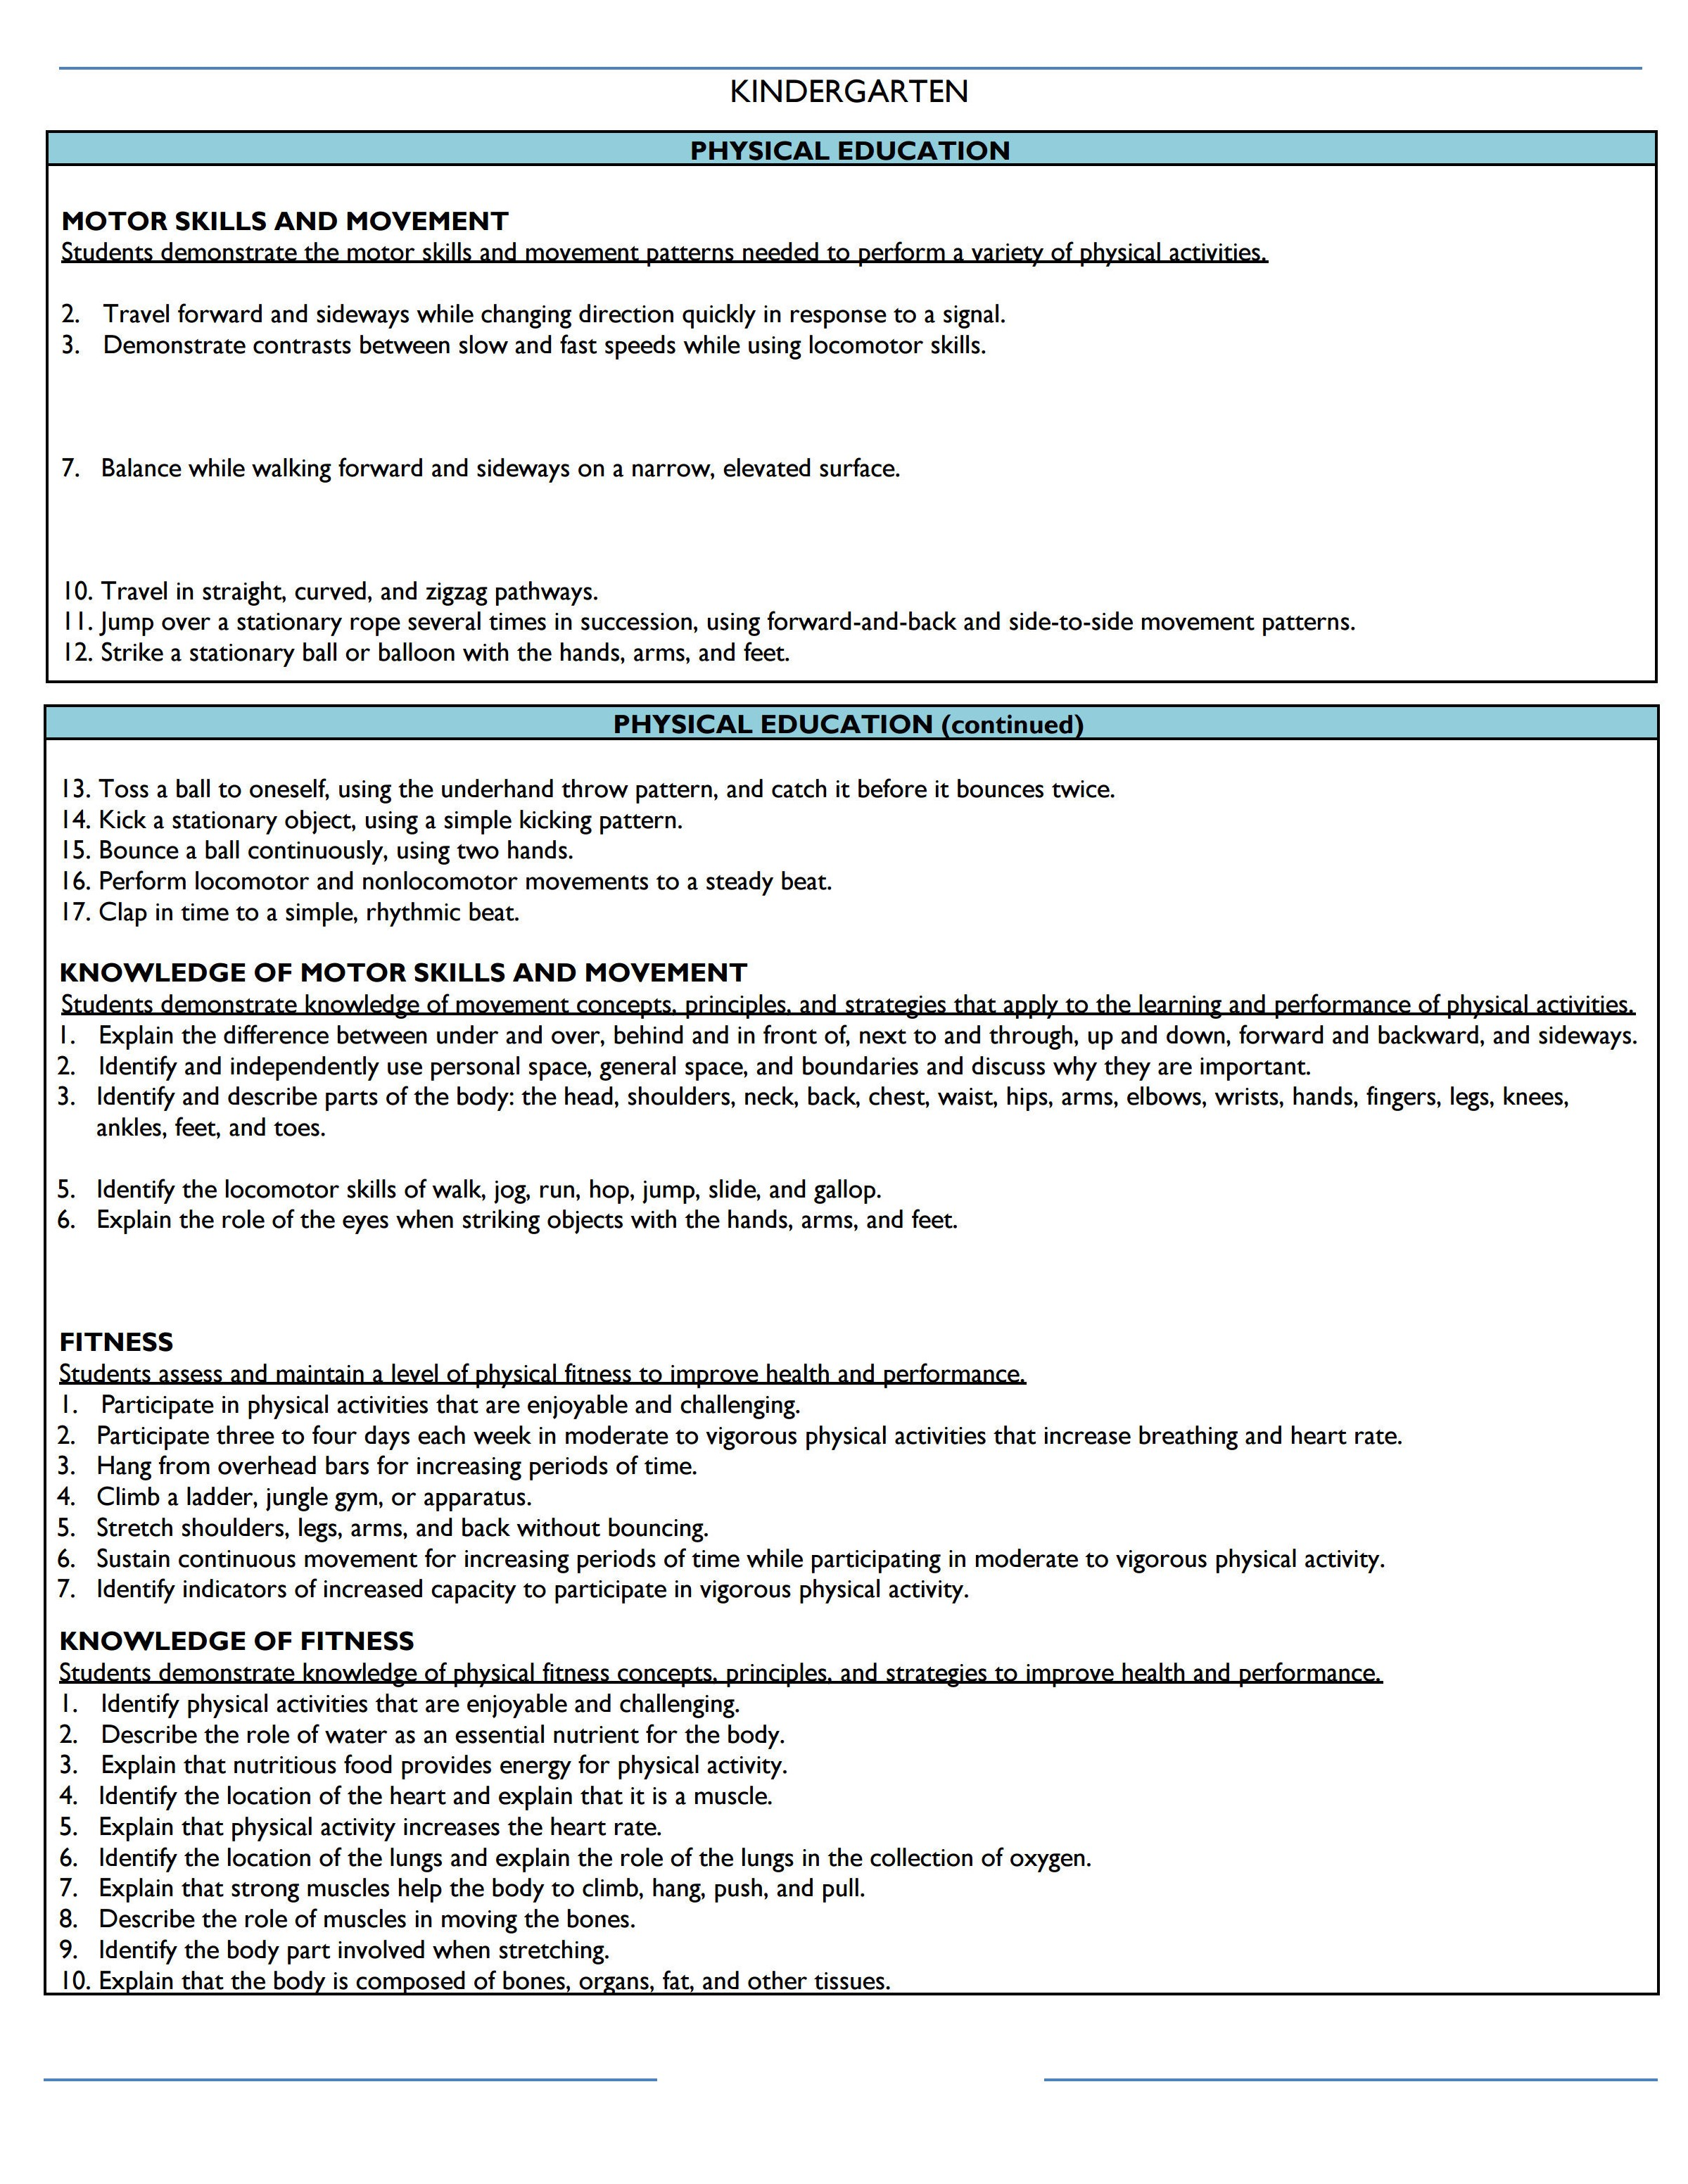 Ms. Amy's Covered TK_K California Standards.doc-6.jpg